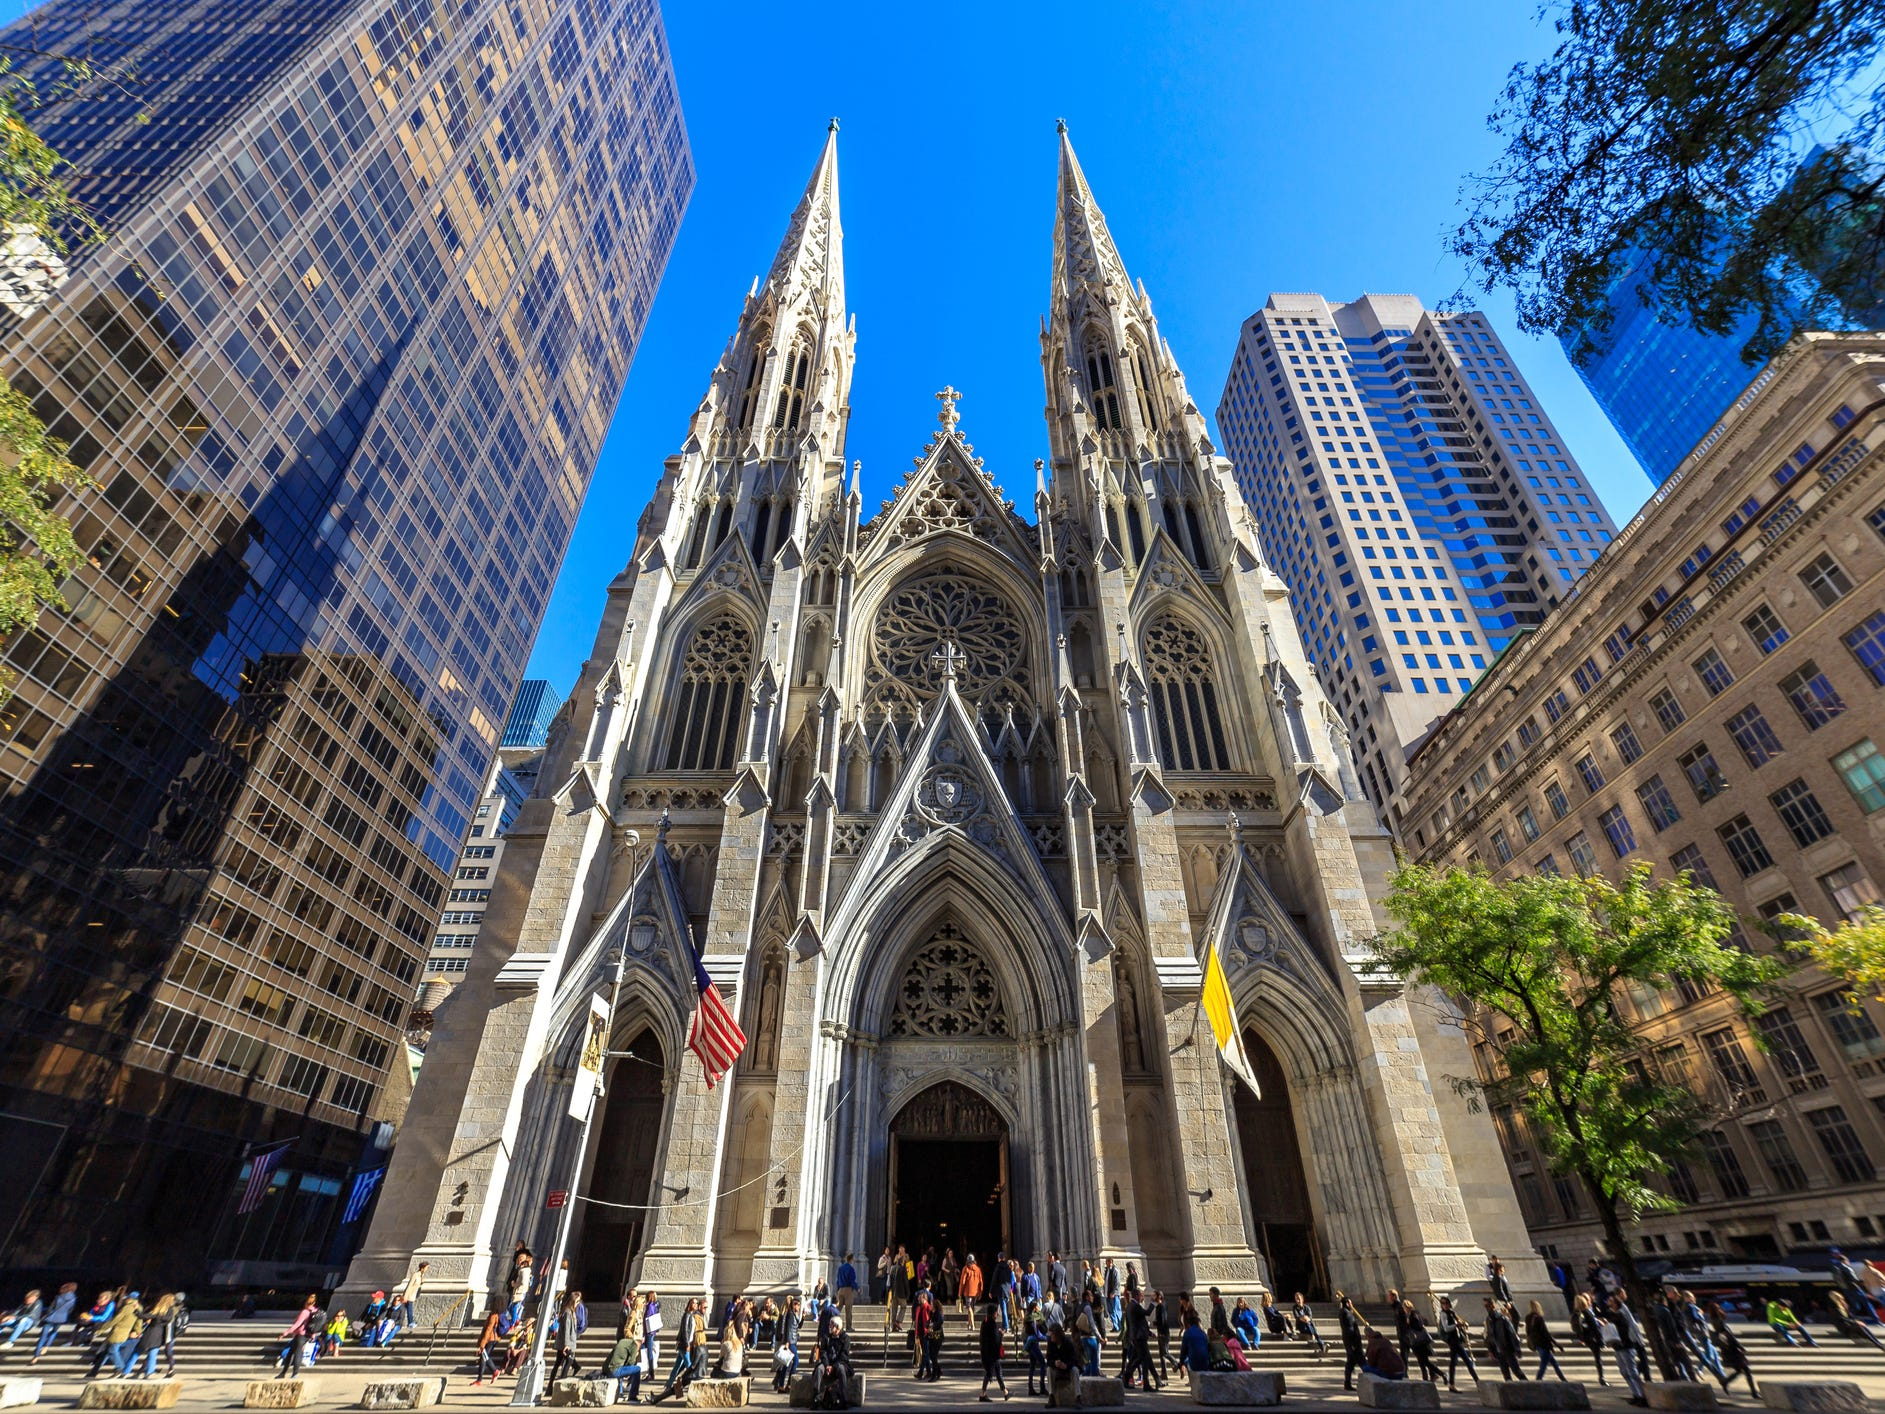 No. 40: St. Patrick's Cathedral in New York City.